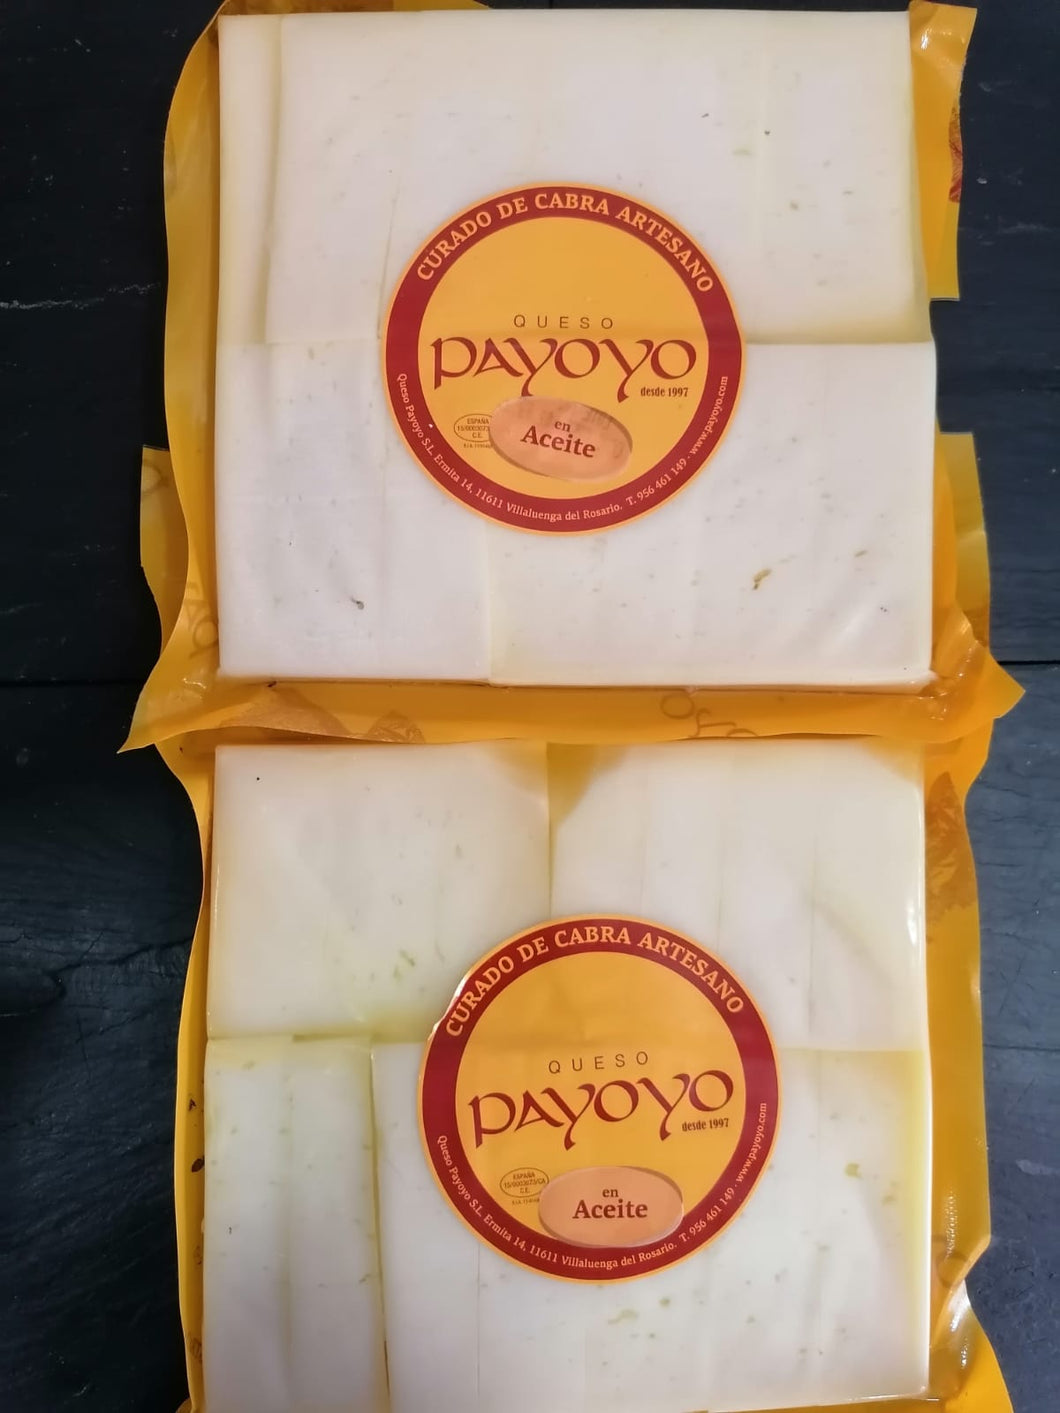 Local and Artisan Payoyo Cured Goats Cheese 500g